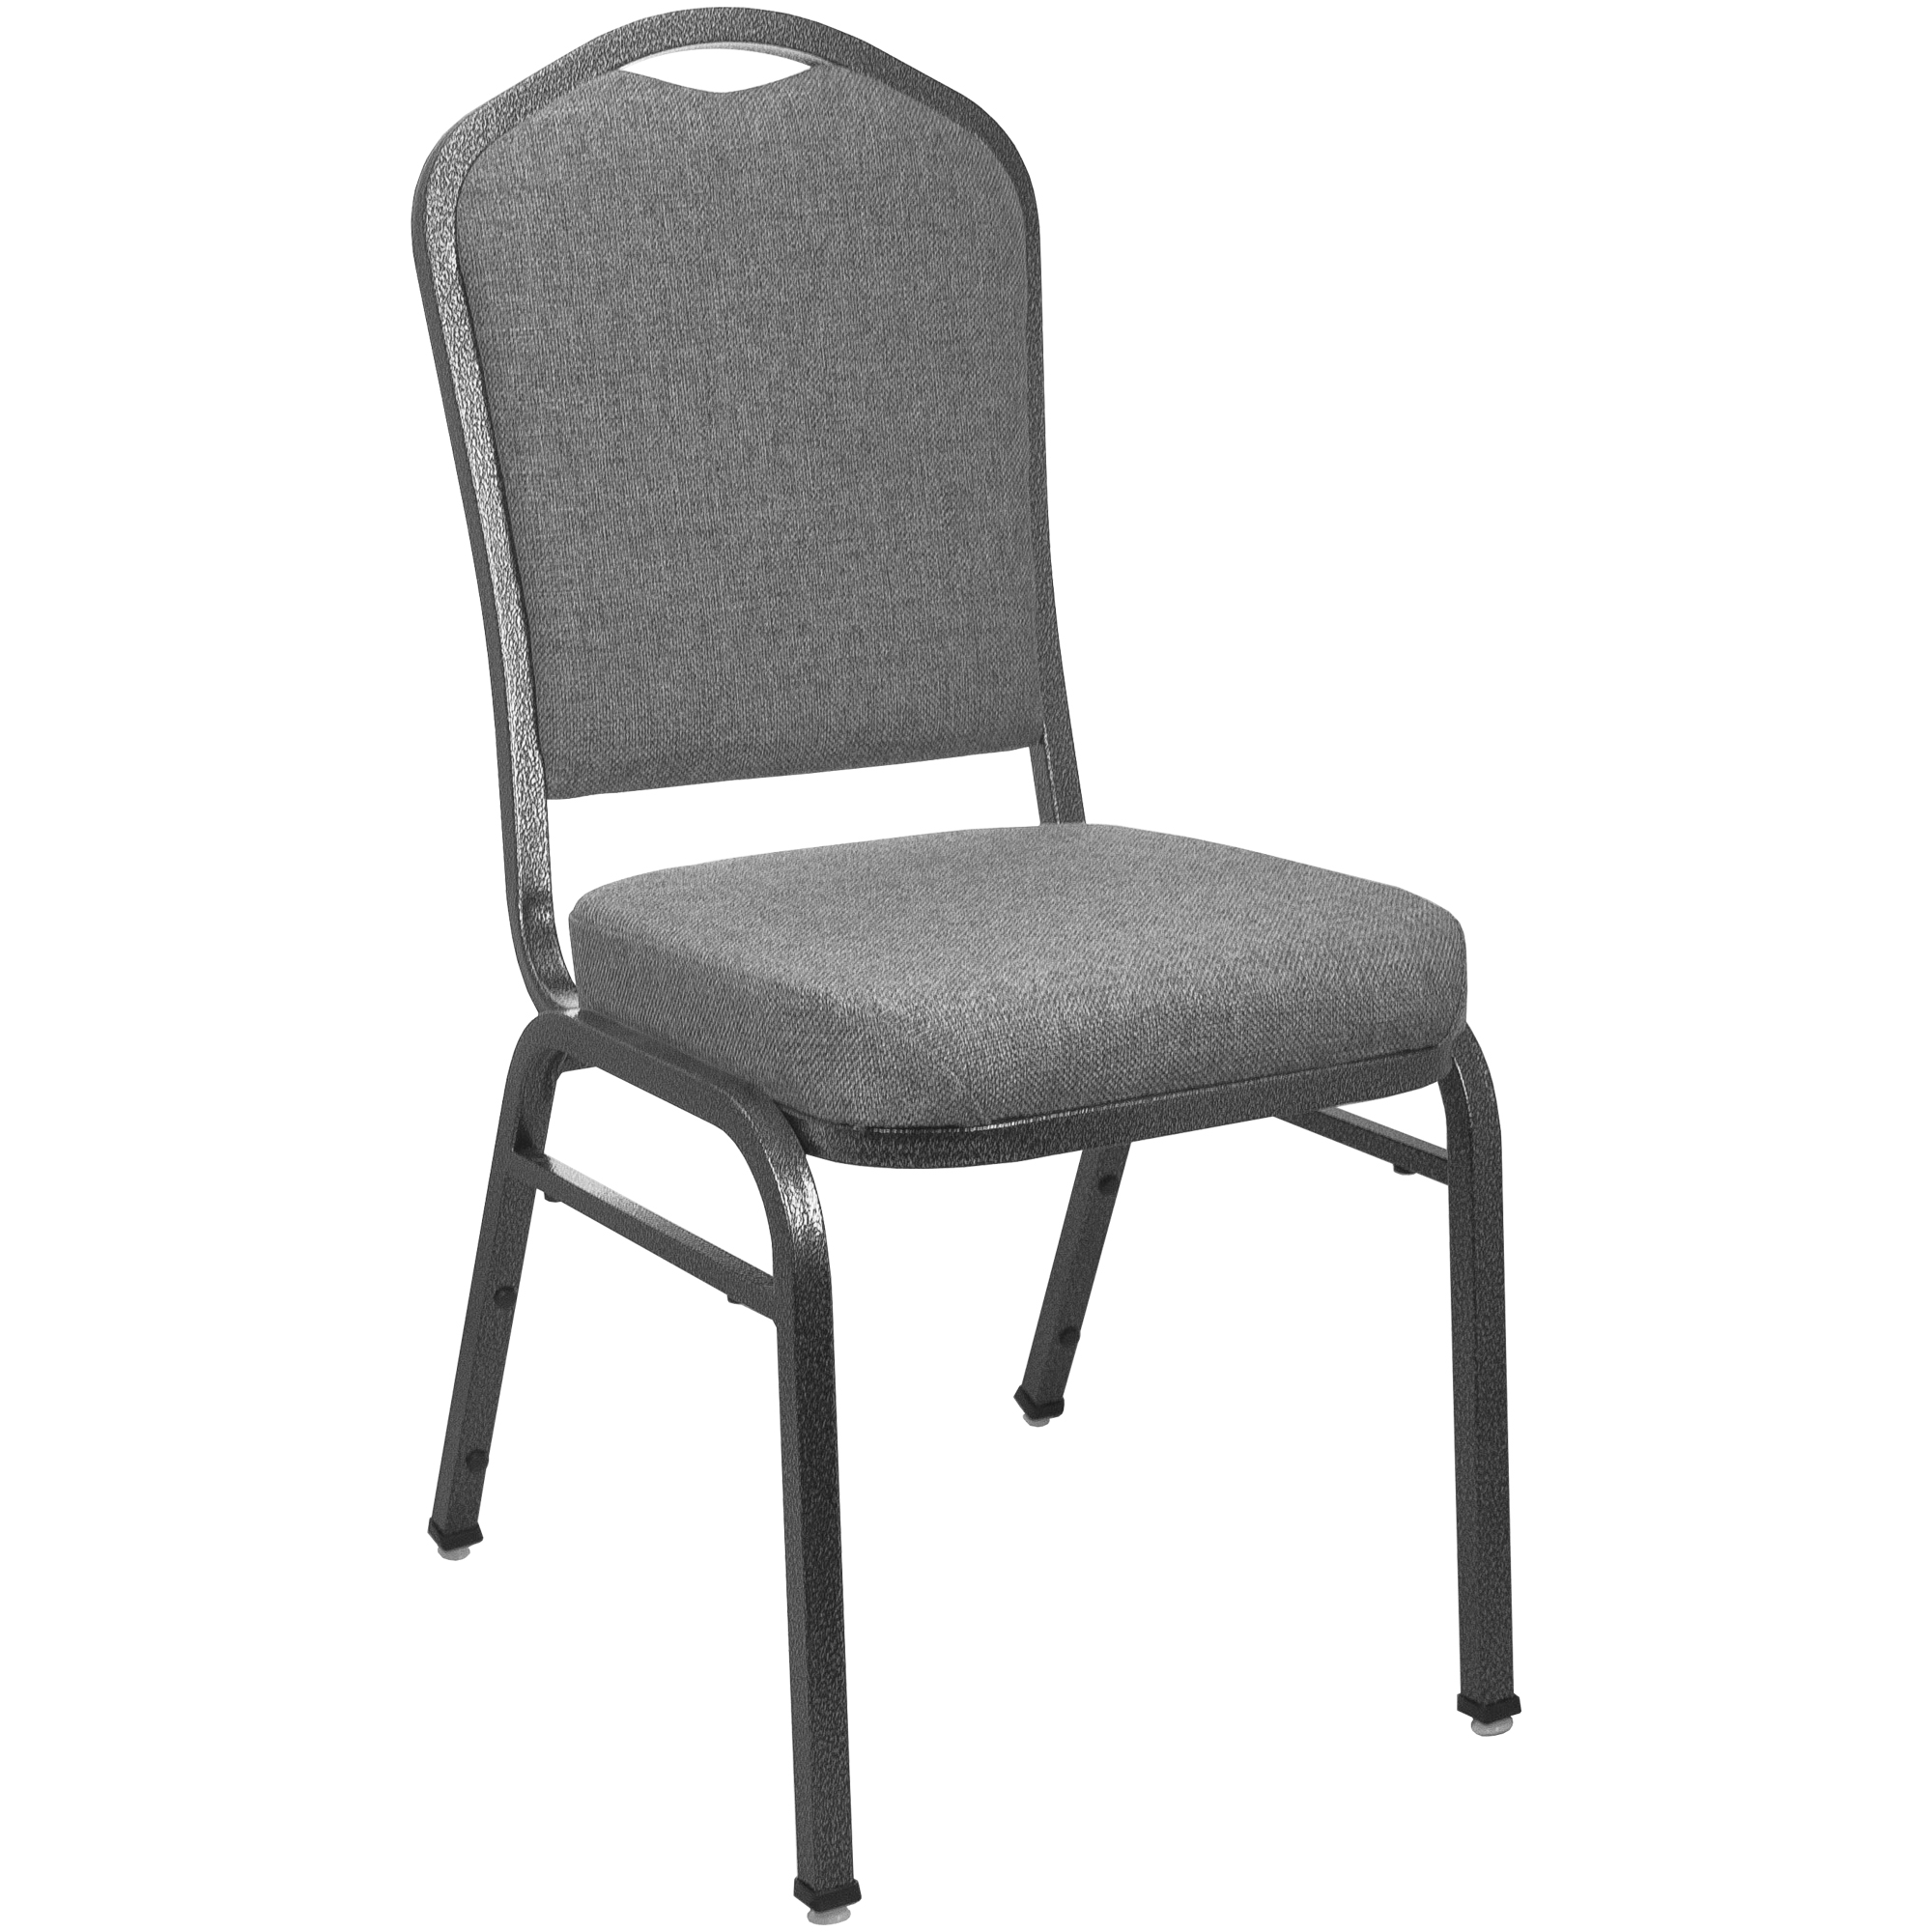 #55 -  Crown Back Banquet Chair with Charcoal Gray Fabric and Silver Vein